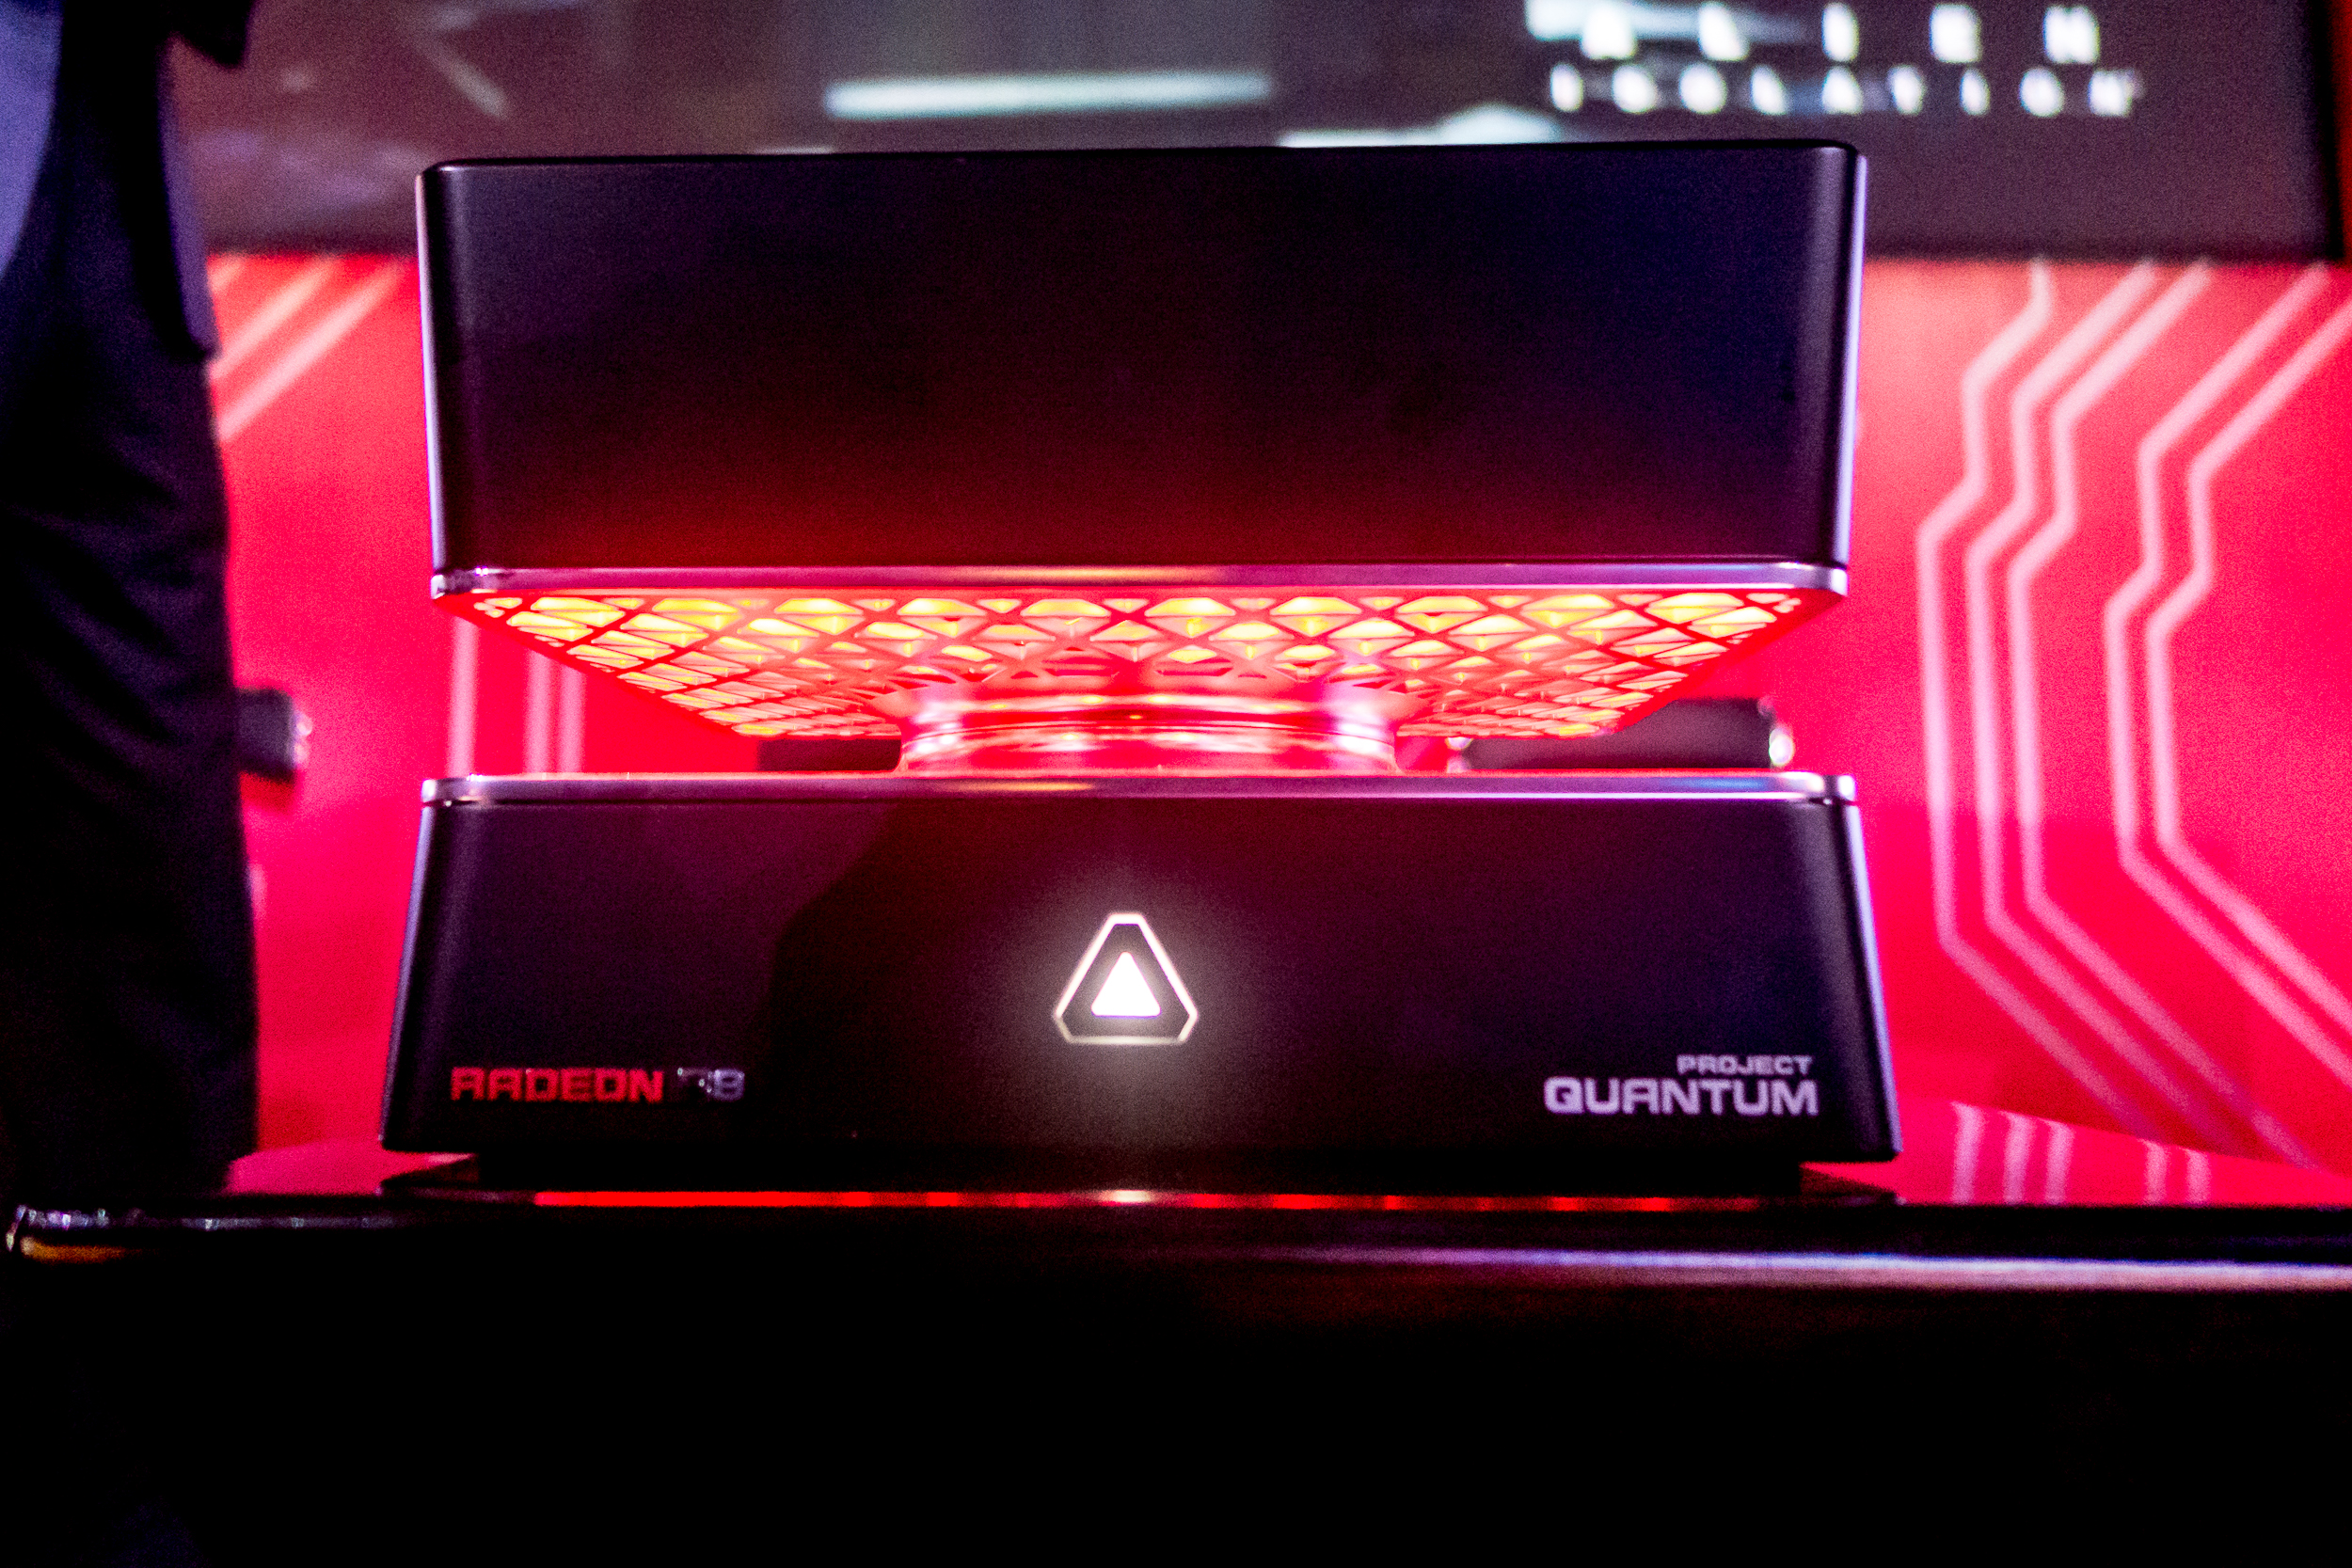 Amd Unveils R9 Fury X Fury And Nano Graphics Cards Ars Technica